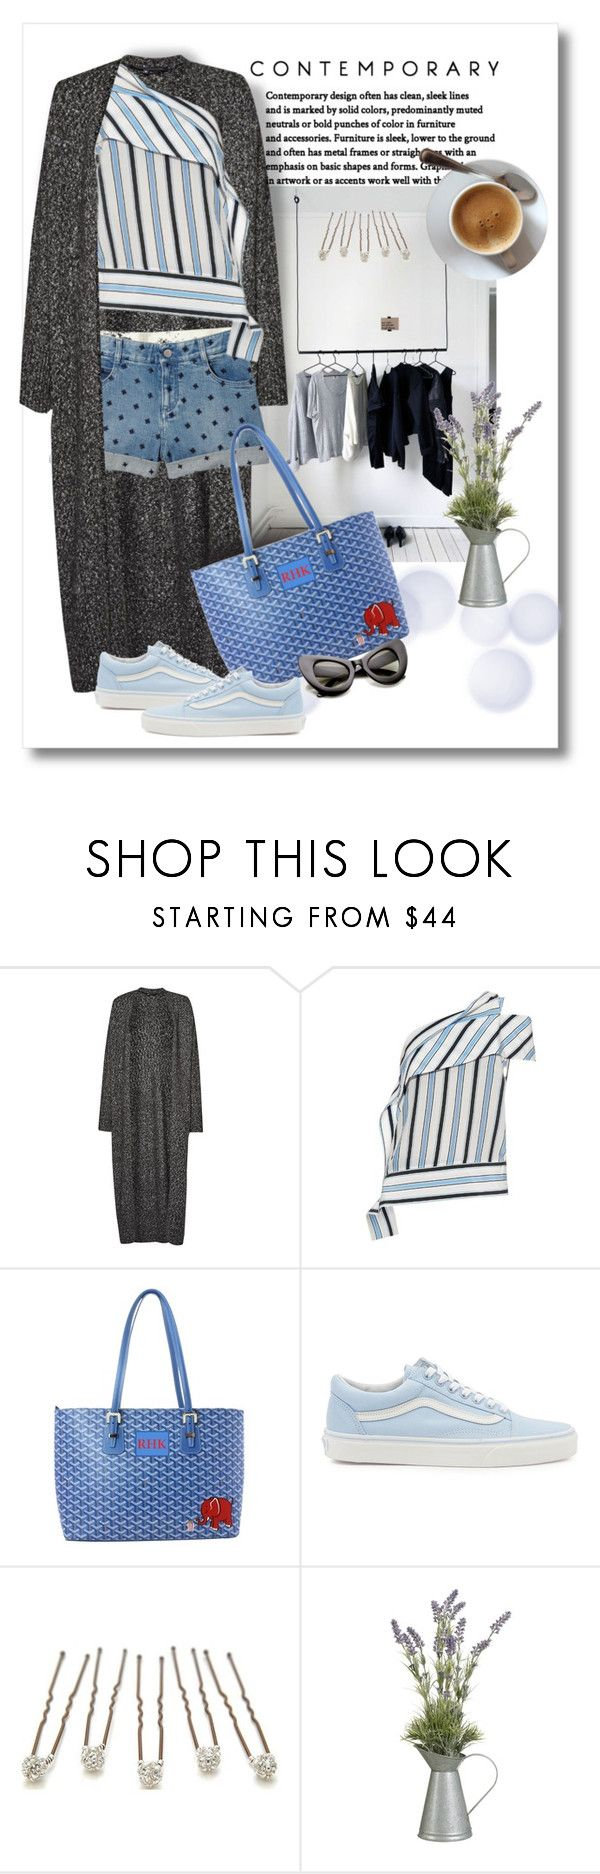 """""""Denim Shorts"""" by mellapr ❤ liked on Polyvore featuring French Connection, STELLA McCARTNEY, MSGM, Trilogy, Goyard, Vans and John Lewis"""